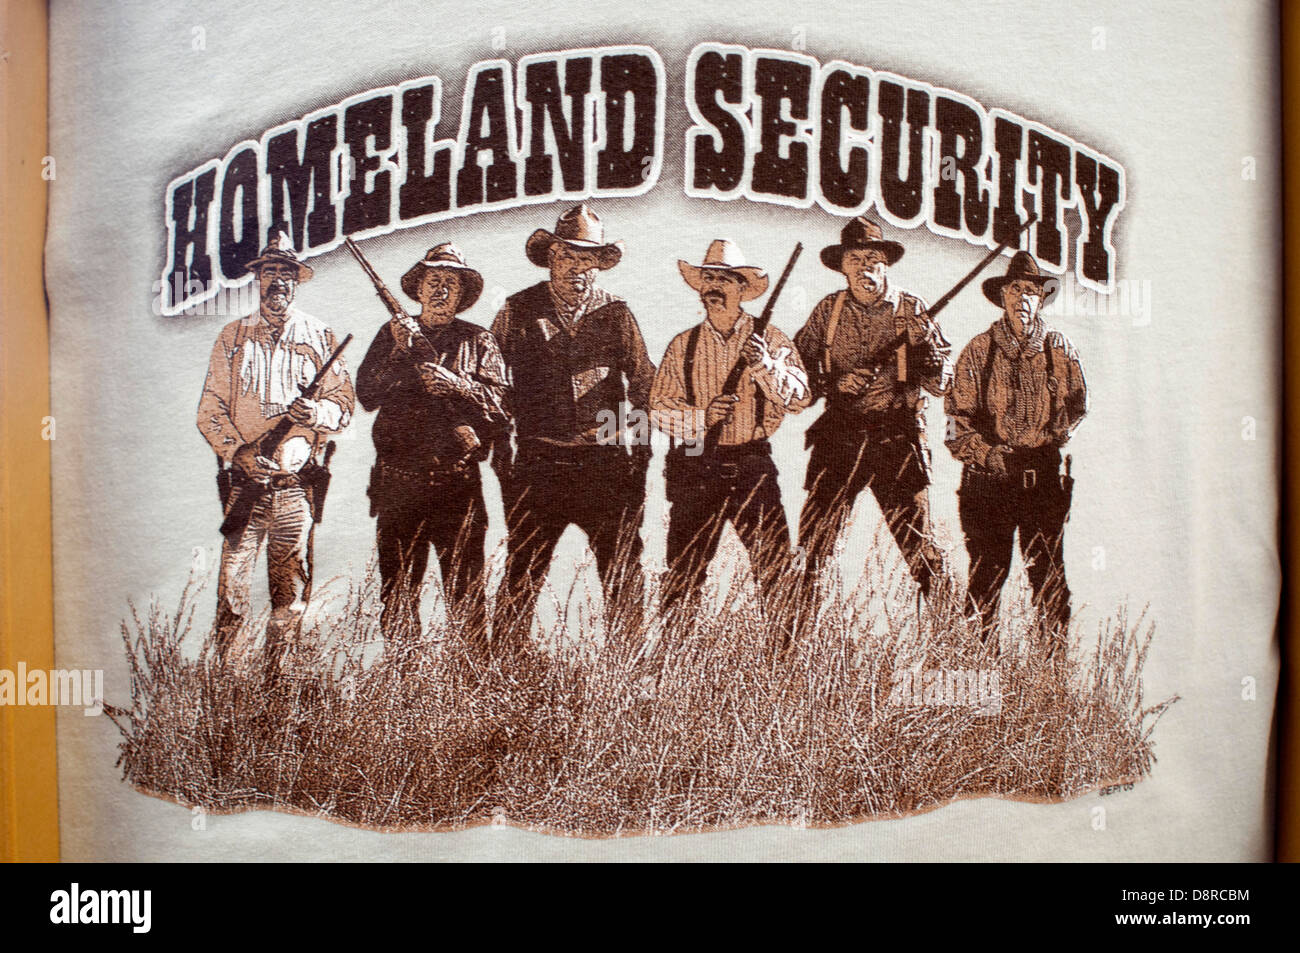 T-shirt mocking the US government's Homeland Security policy. - Stock Image